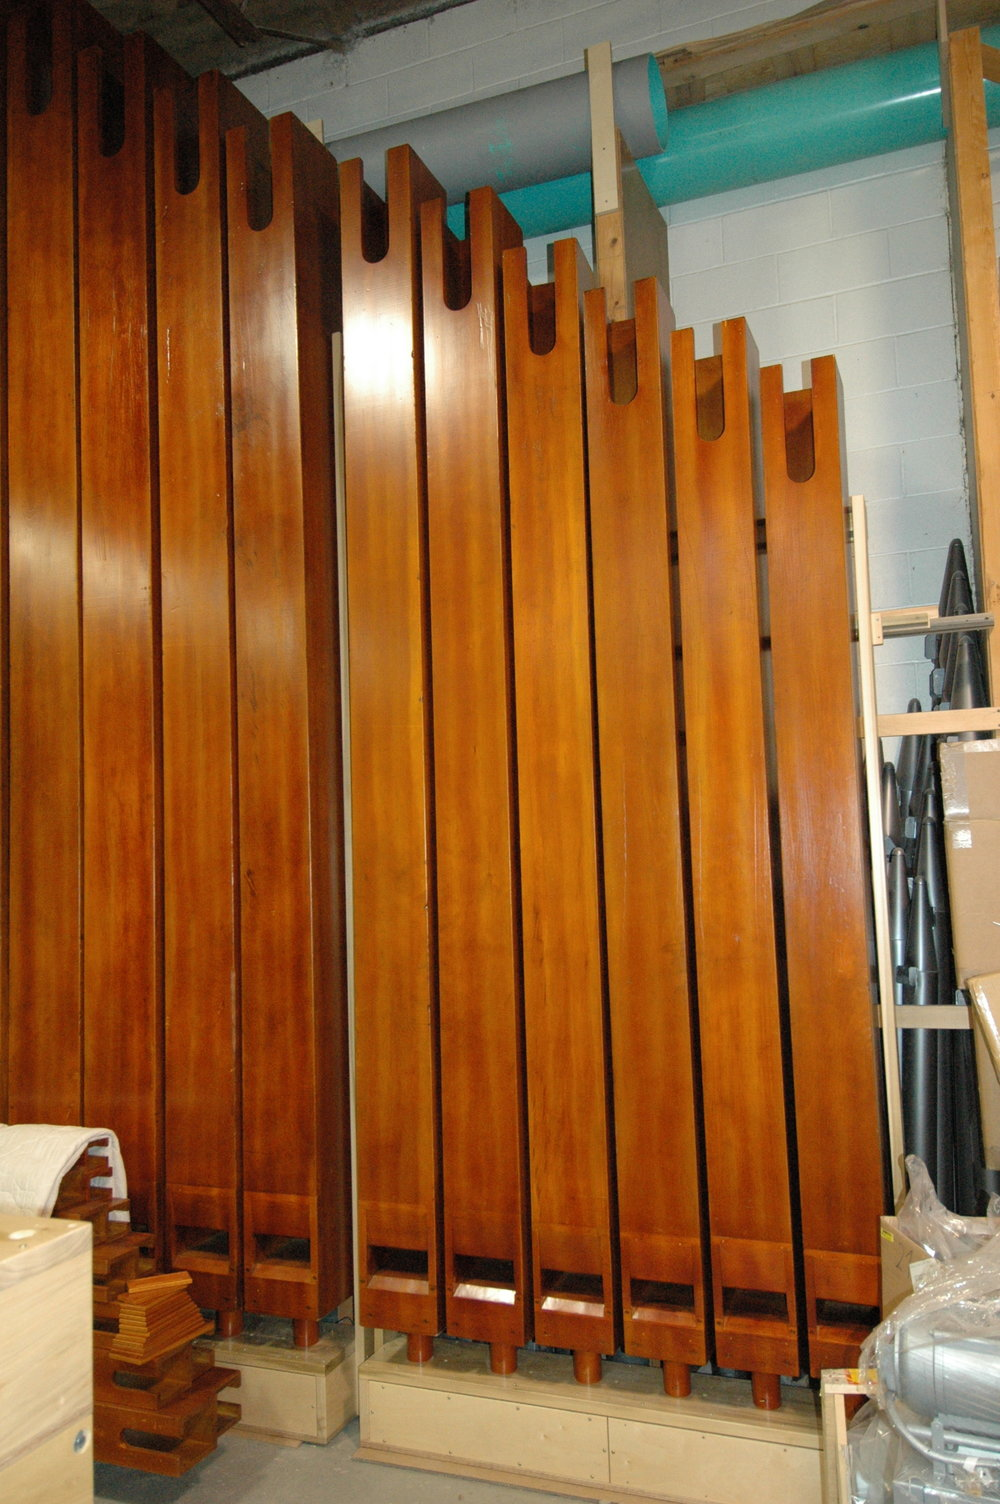 Open Wood organ pipes